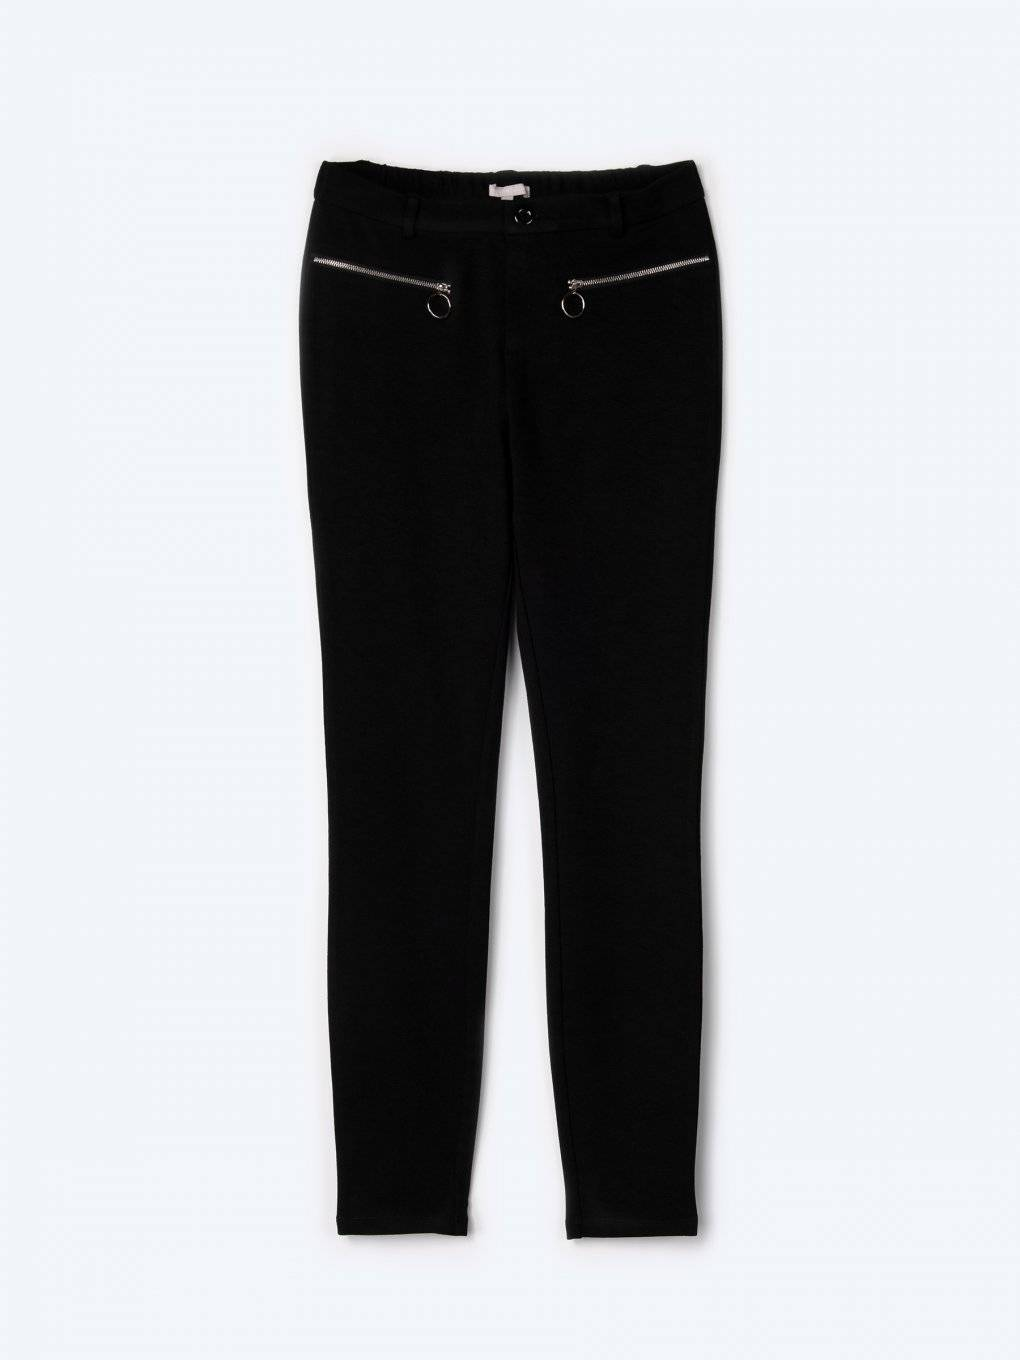 Slim trousers with decorative zippers